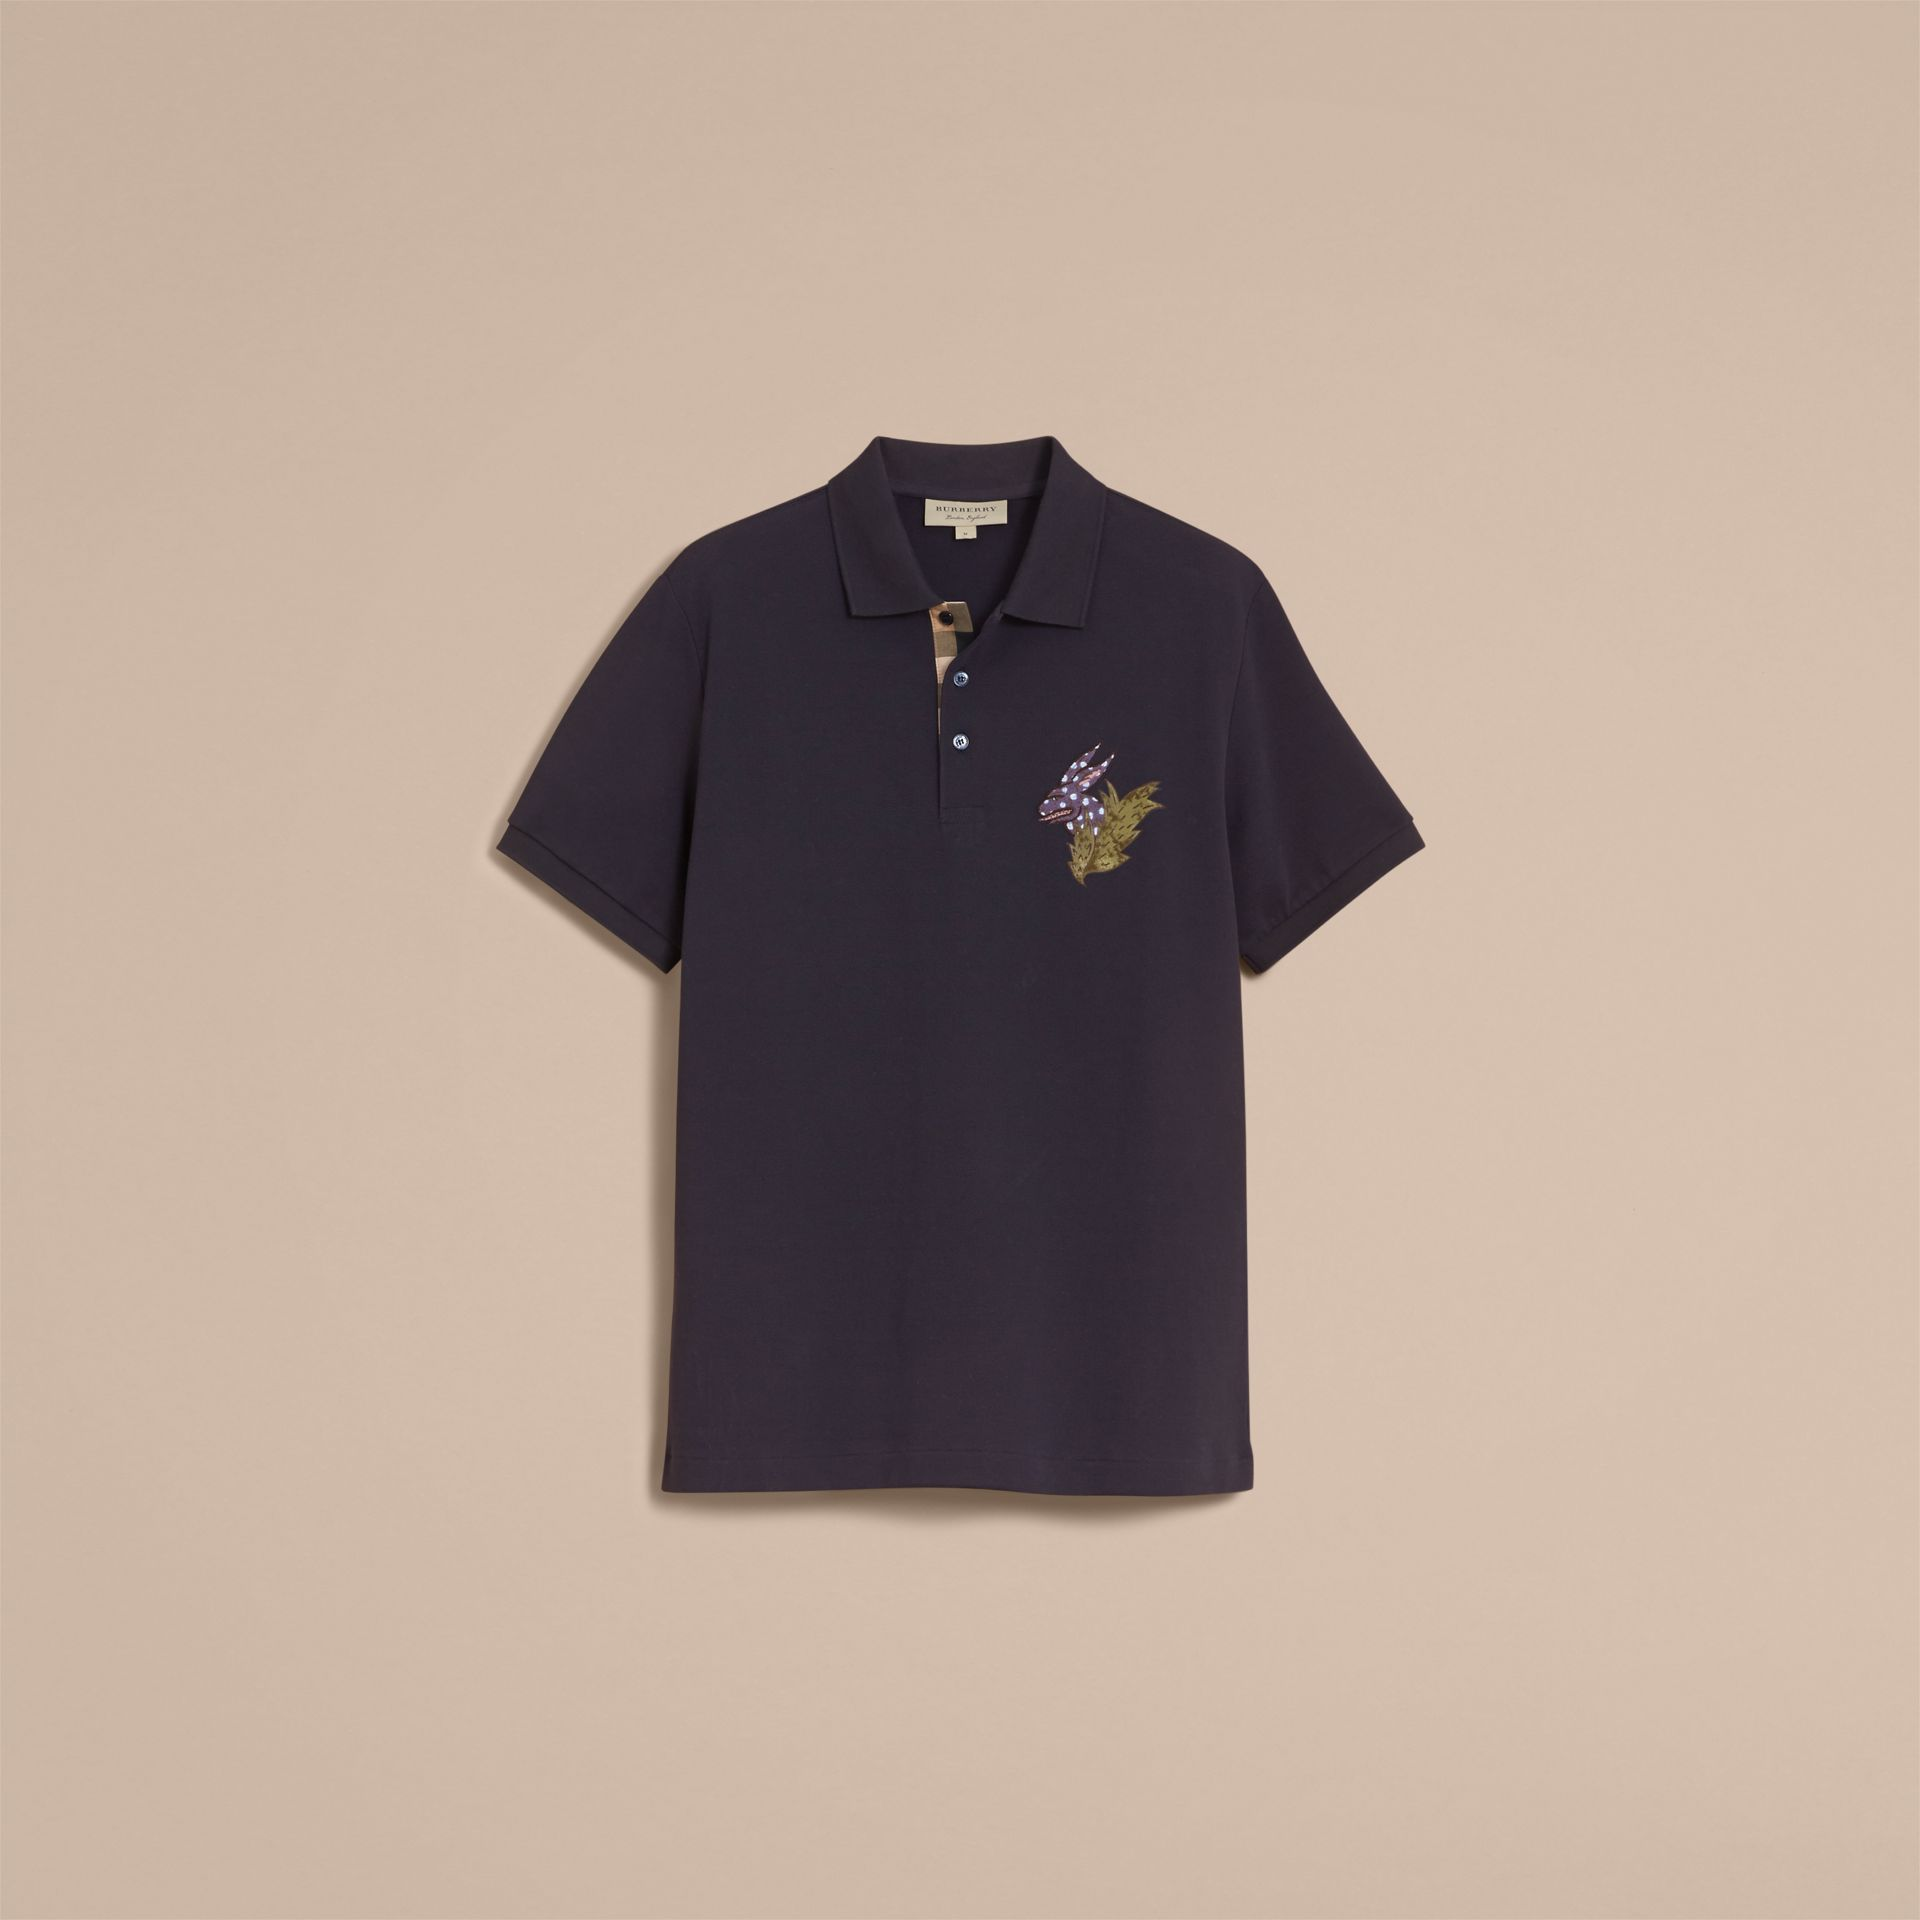 Beasts Motif Cotton Piqué Polo Shirt in Dark Navy - Men | Burberry - gallery image 4